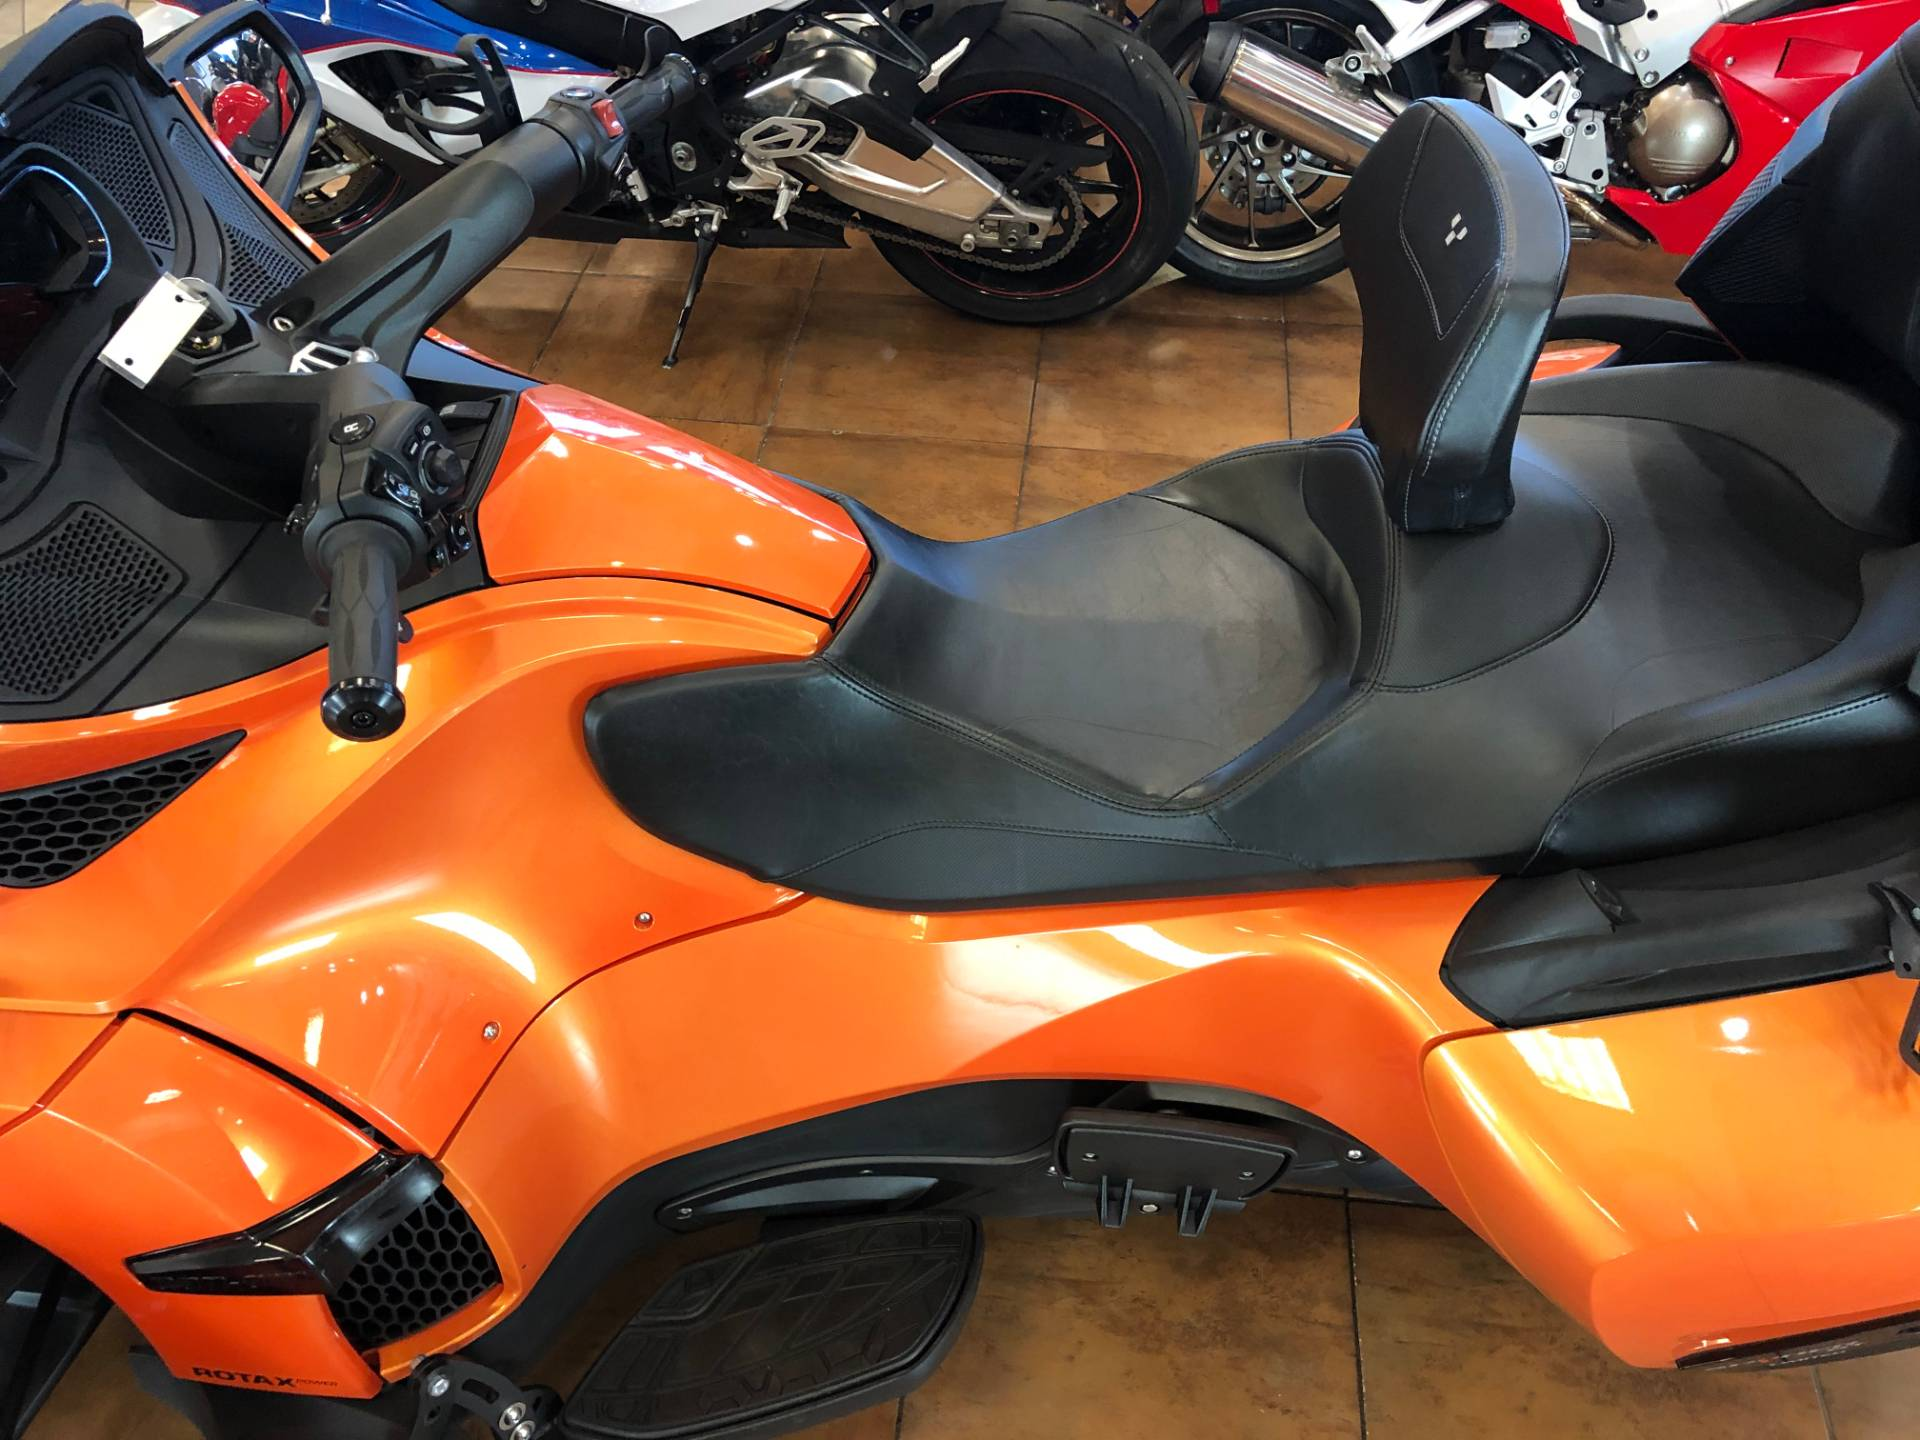 2019 Can-Am Spyder RT Limited in Pinellas Park, Florida - Photo 17